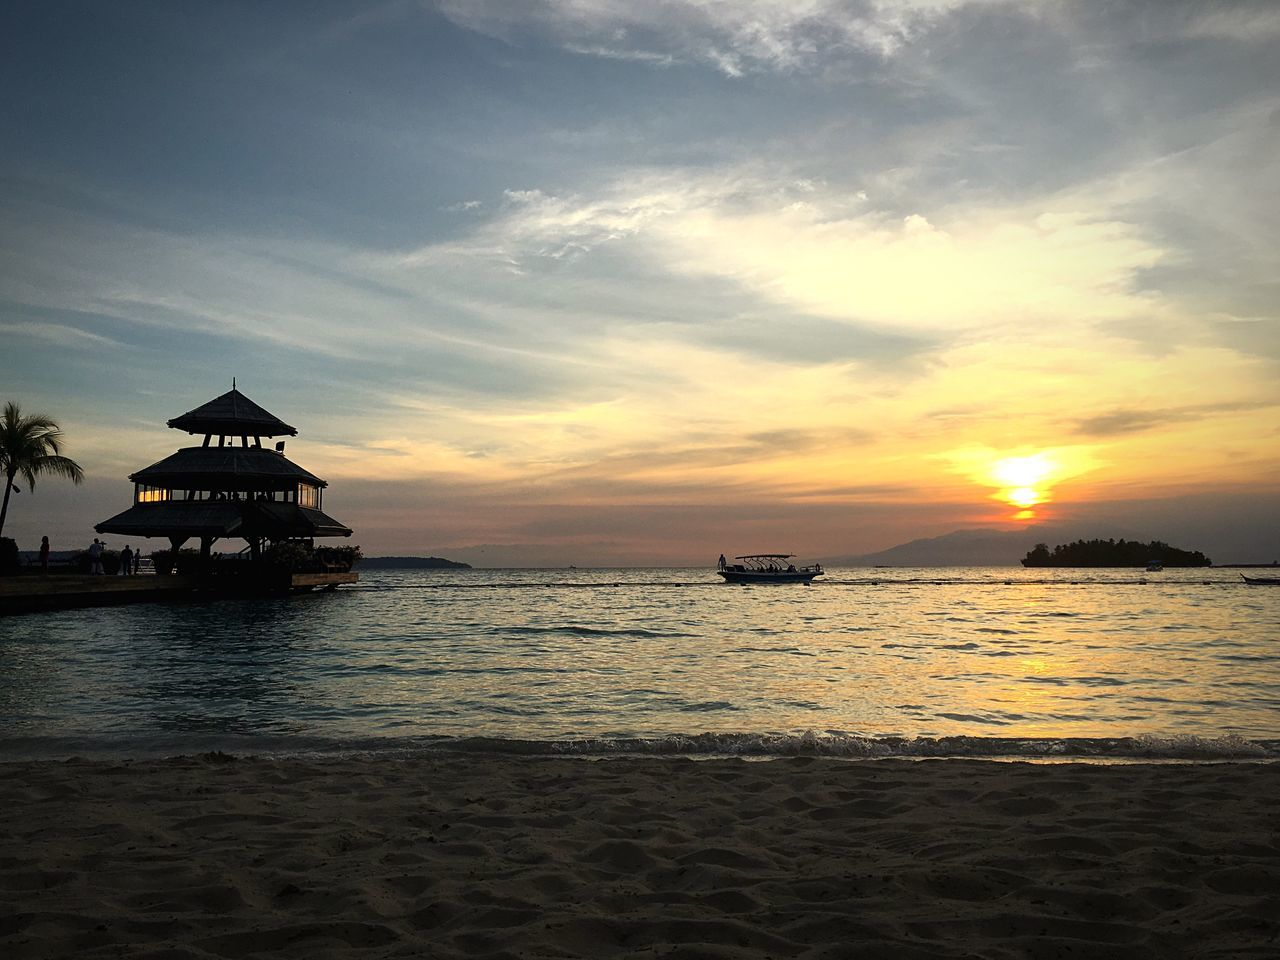 Sunset Beach Philippines Davao Water Season